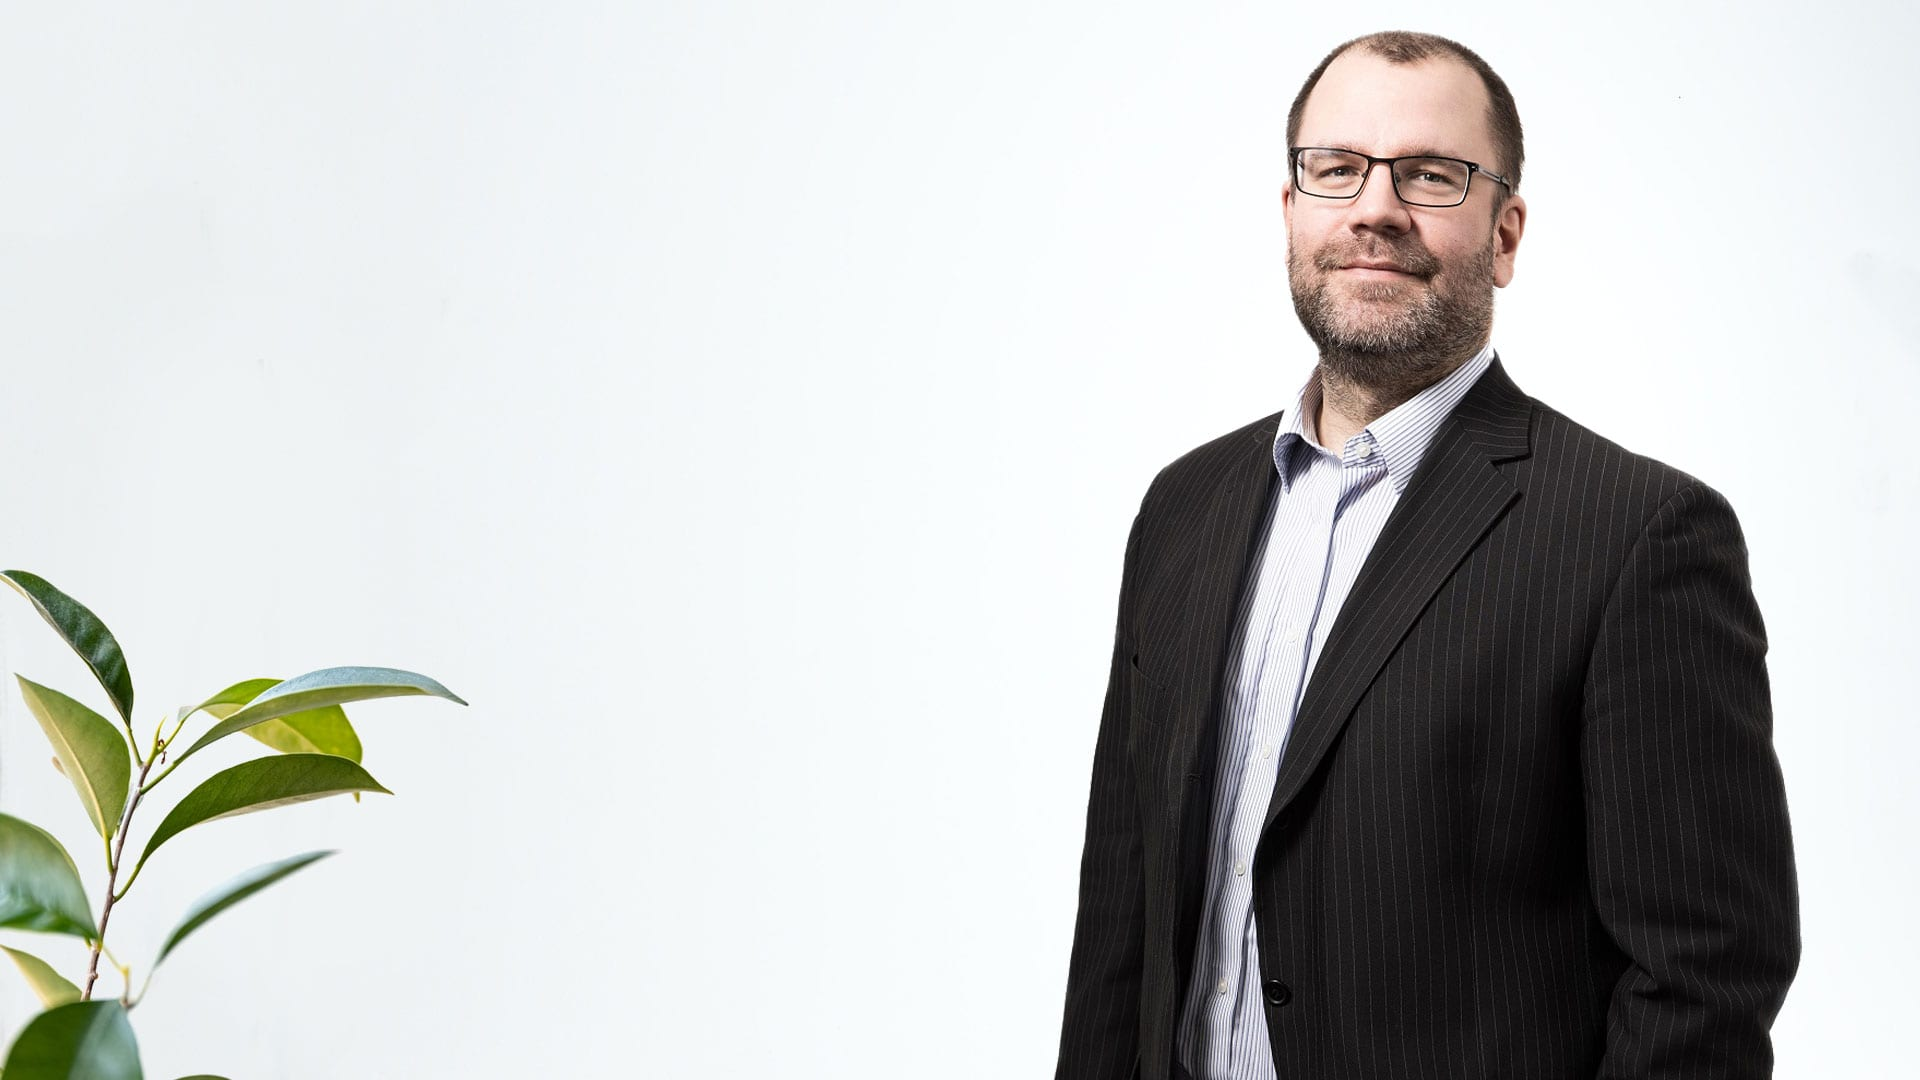 Peter Fecko appointed new CEO of Grayling CEE